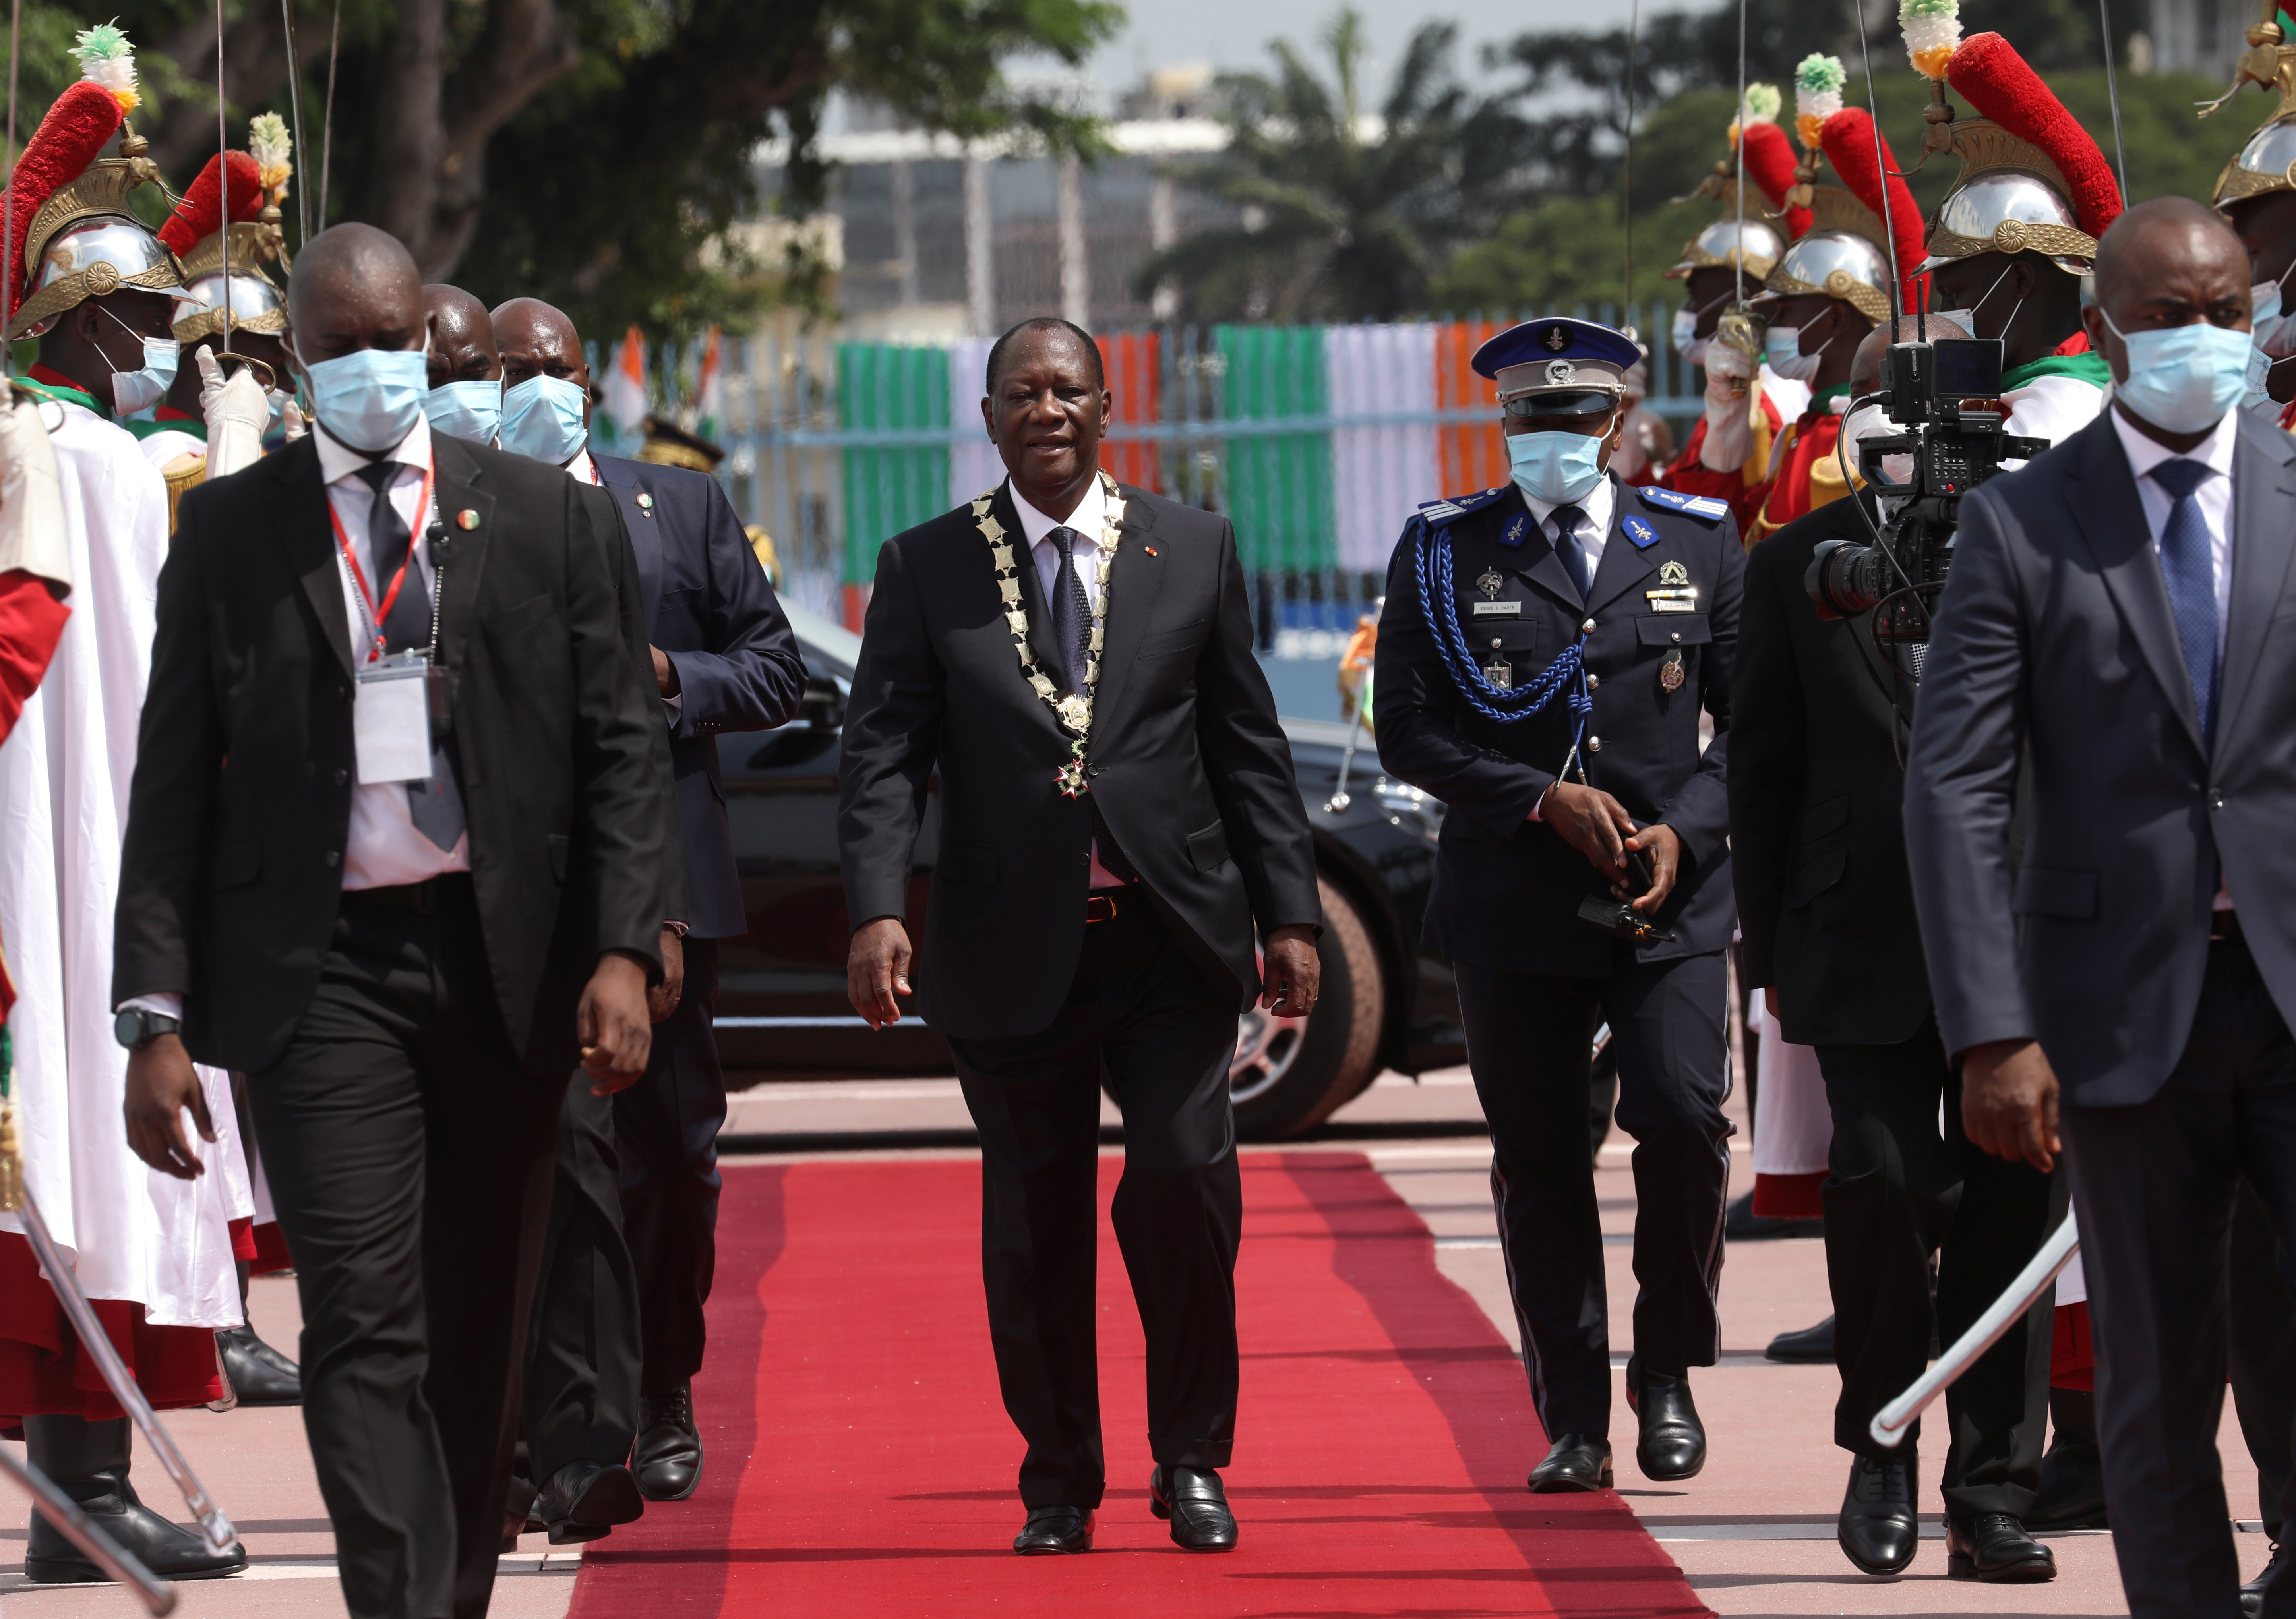 Ivory Coast's 78-Year-Old Ruler, Ouattara Sworn In For Third Term